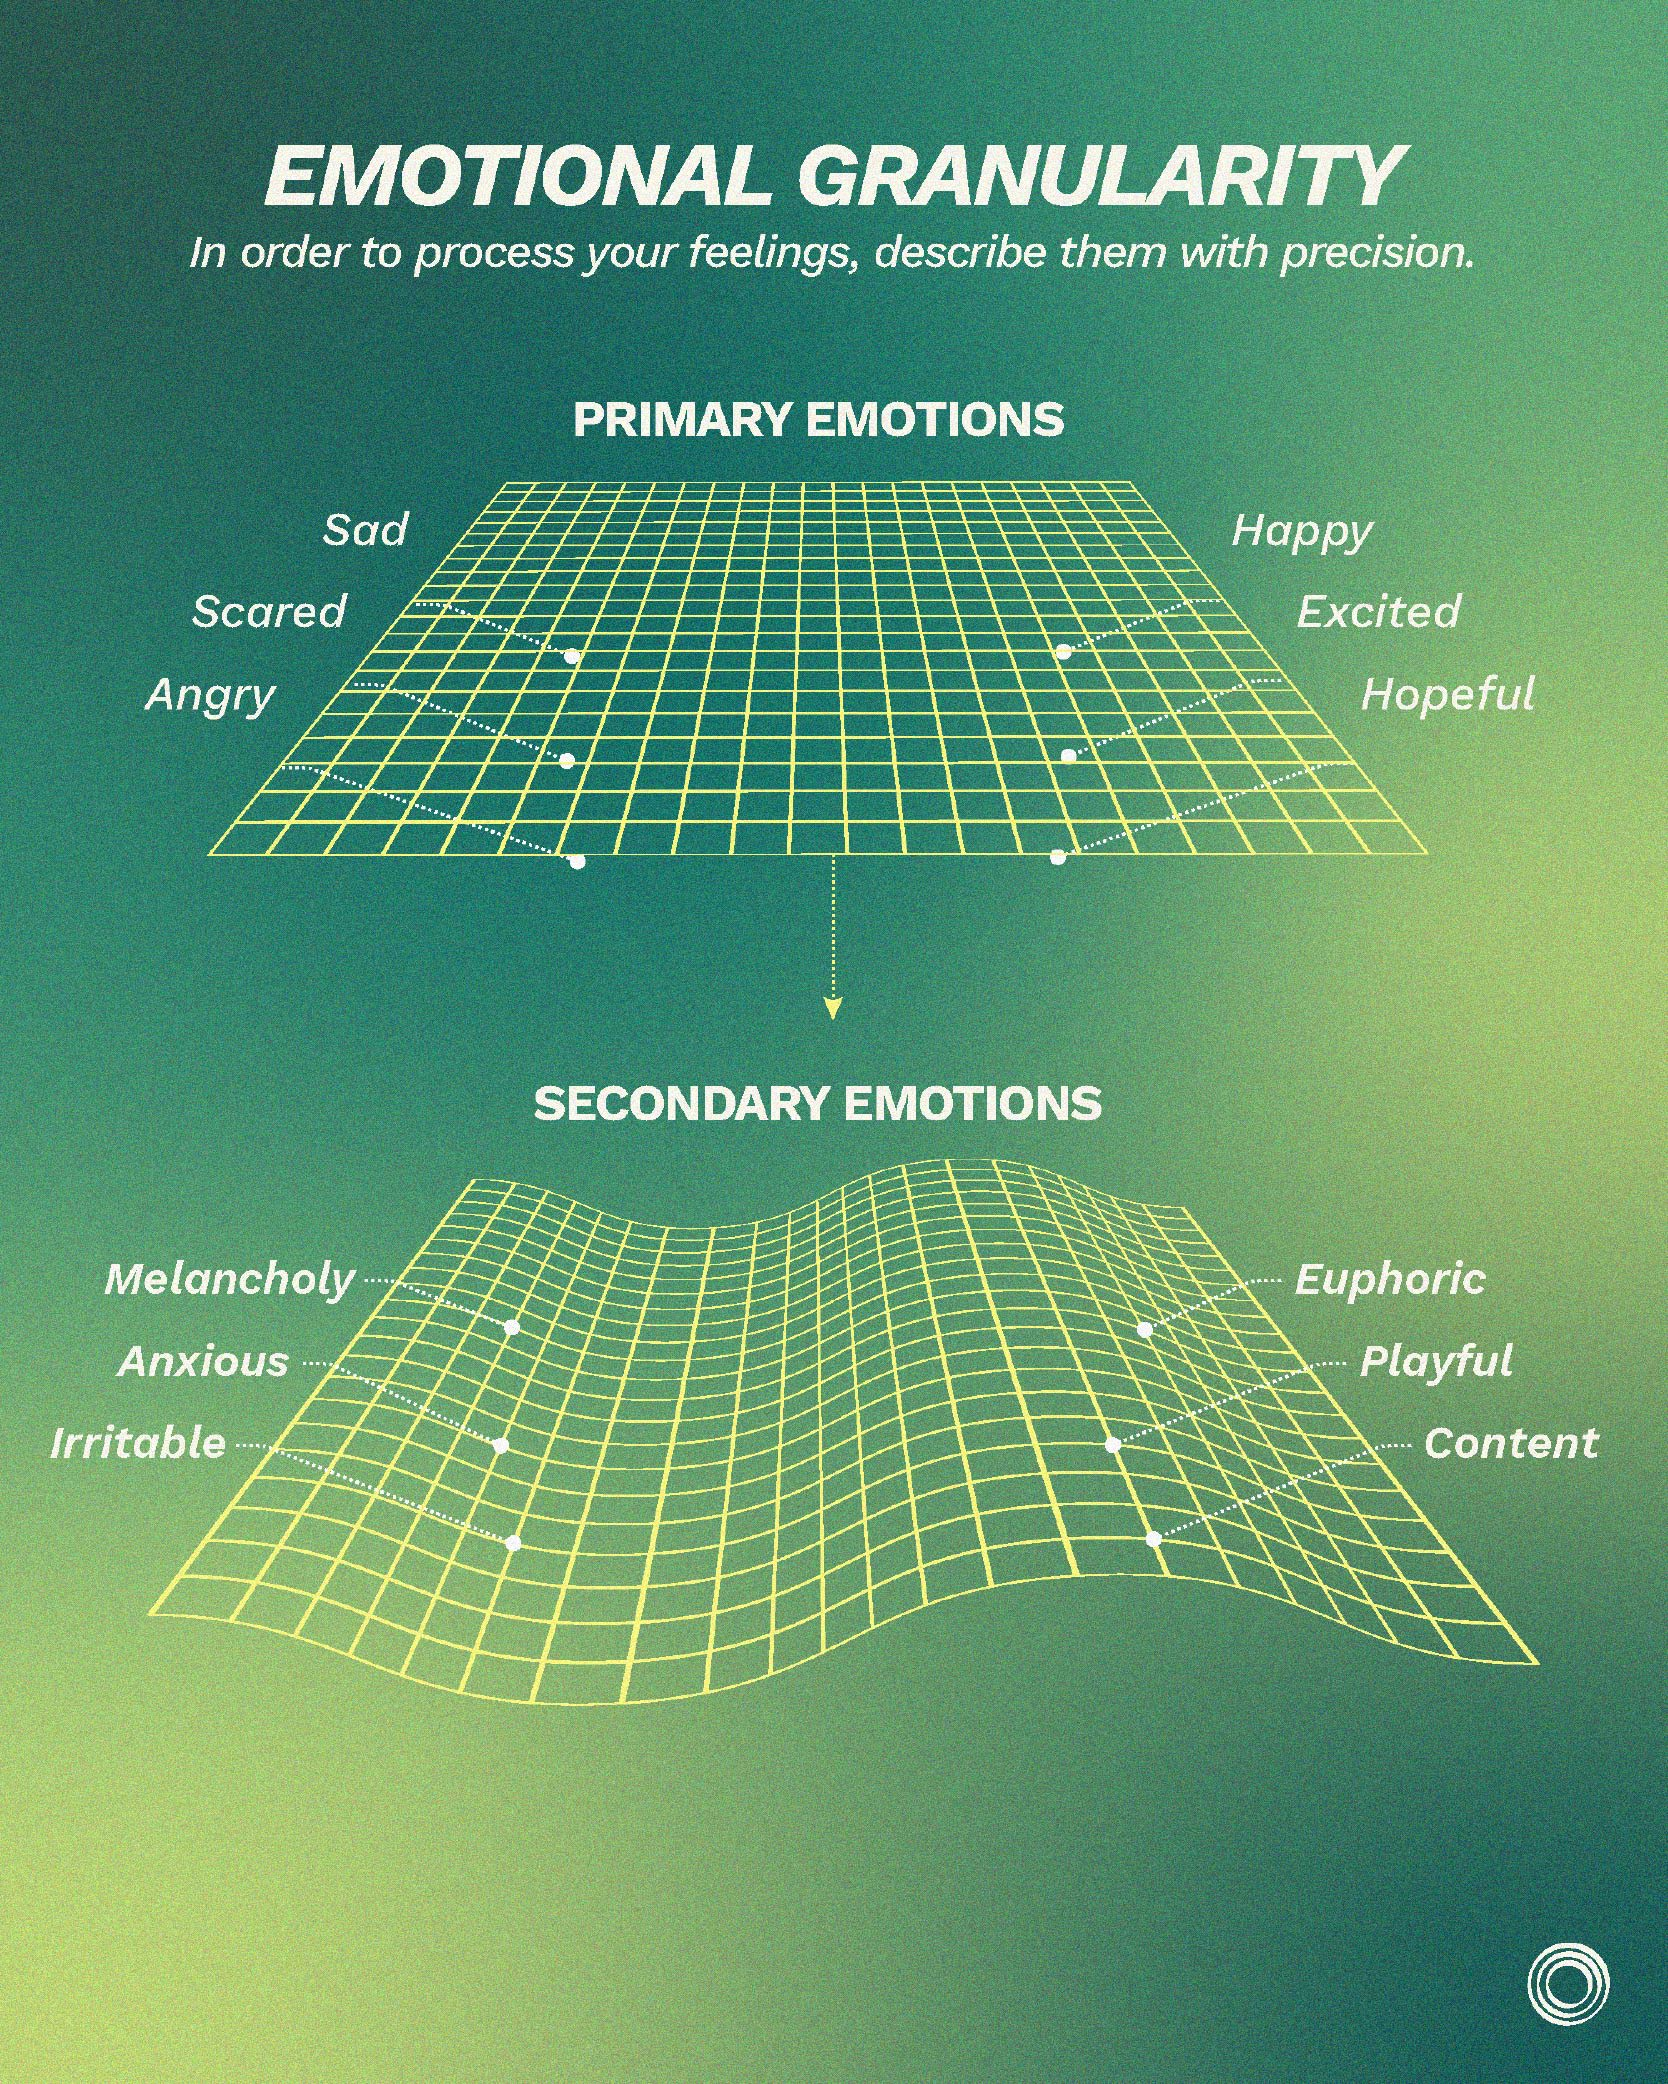 image-displaying-emotions-with-precision